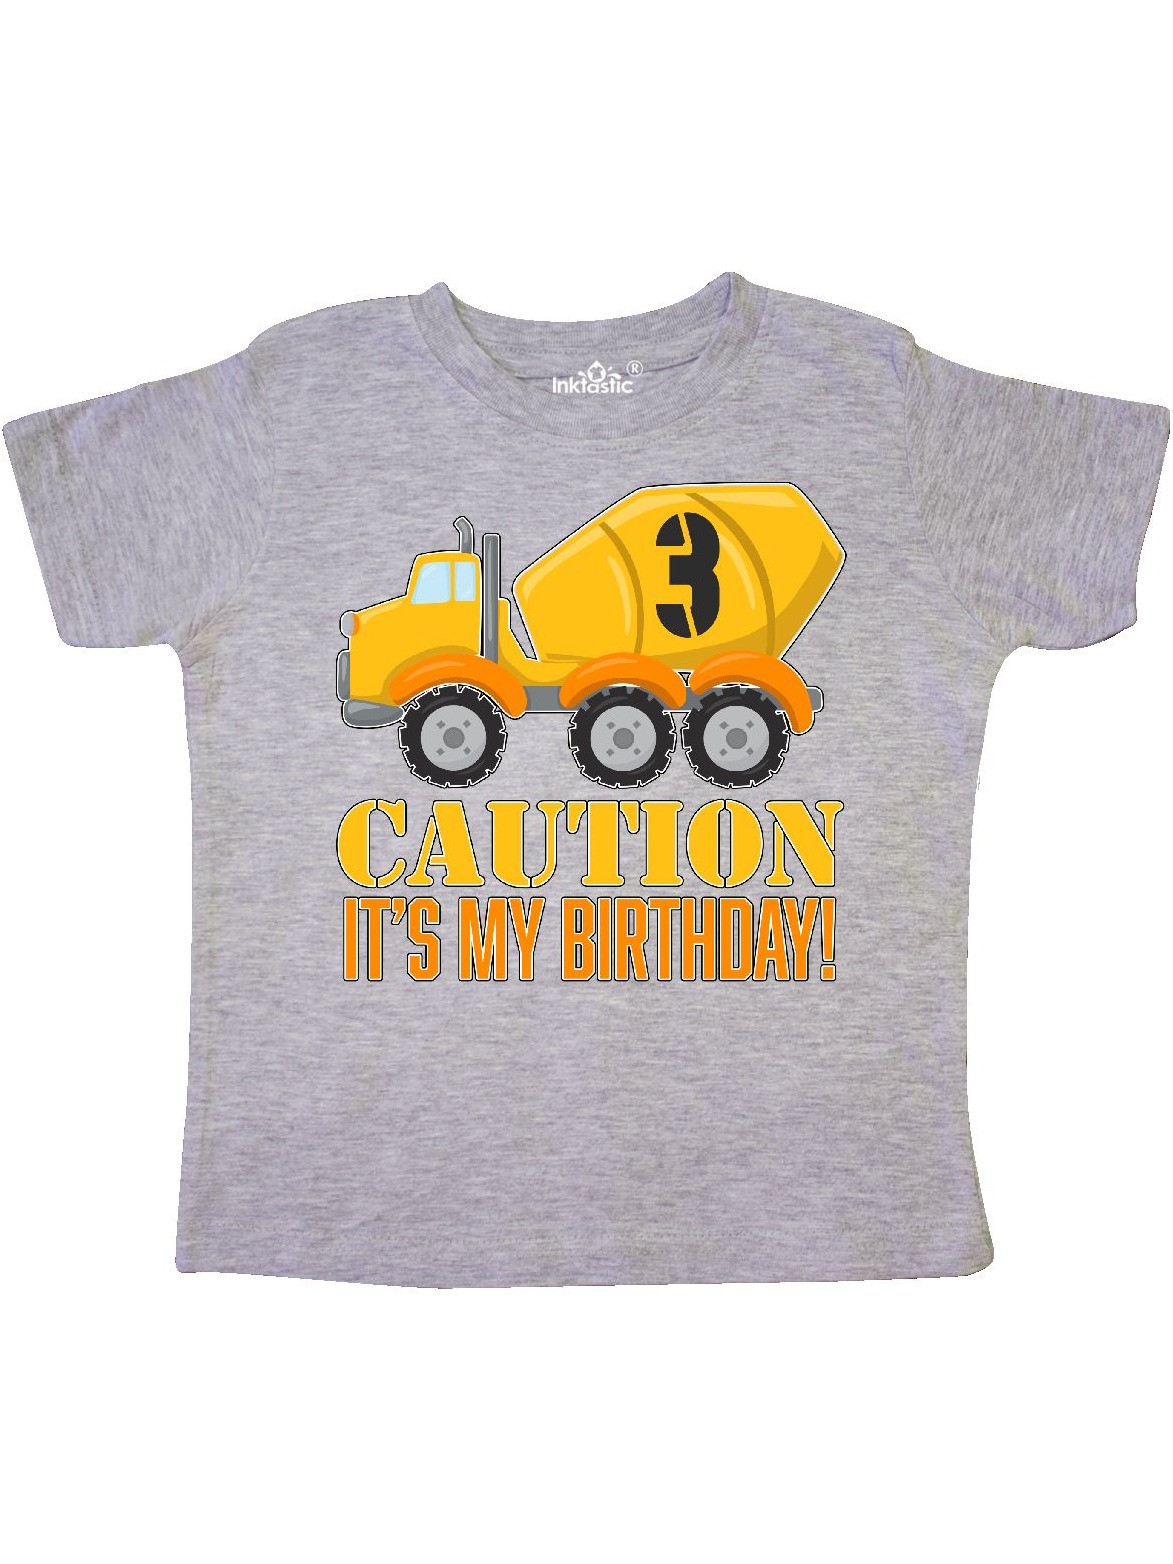 3rd birthday construction truck, cement mixer - 3 years old Toddler T-Shirt